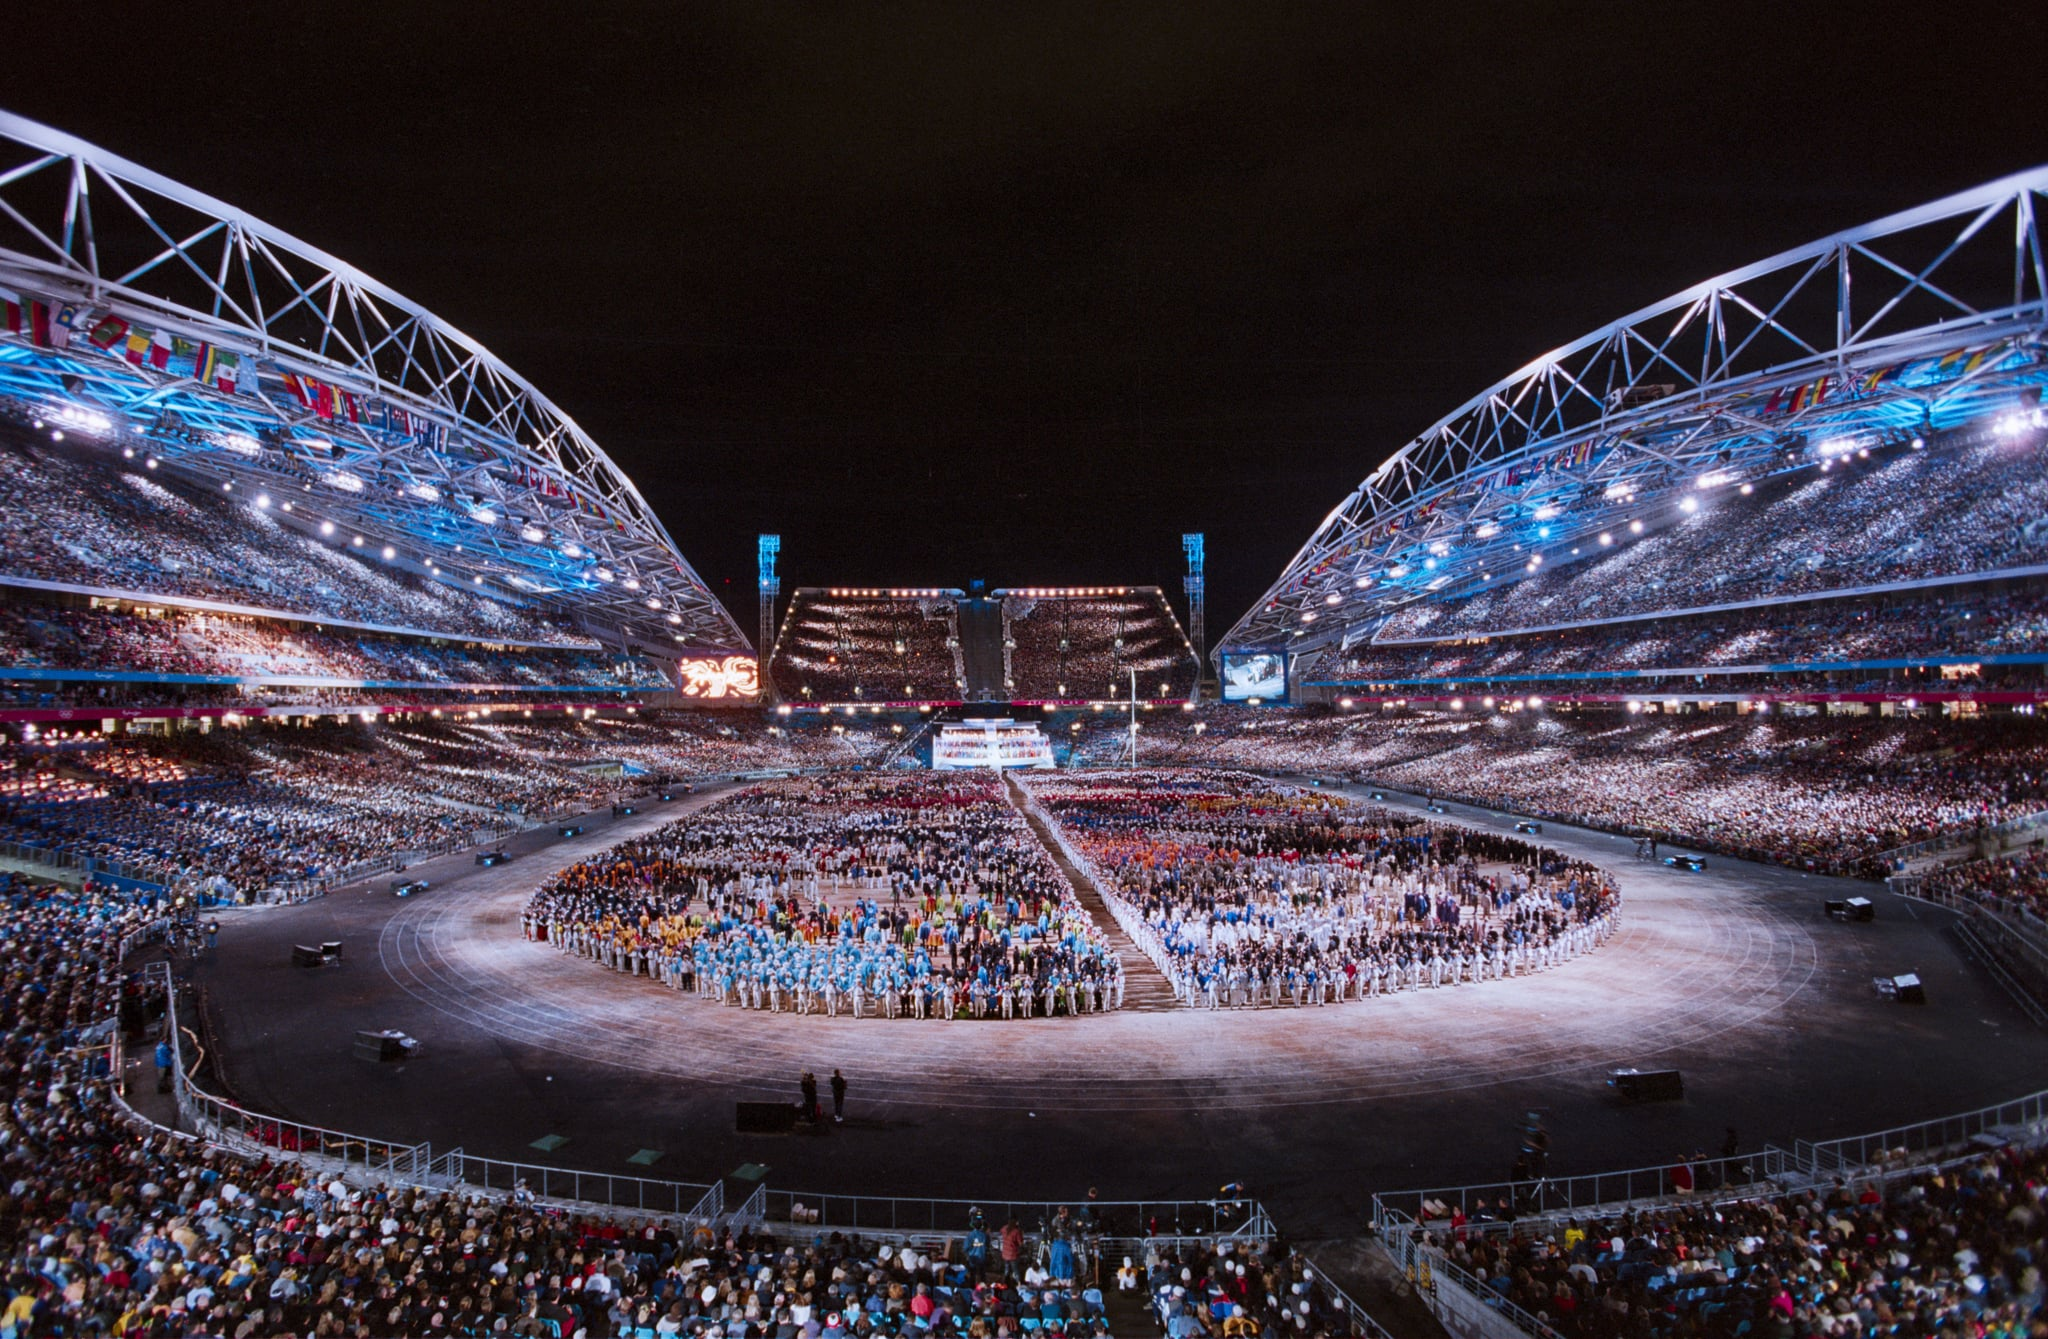 SYDNEY, AUSTRALIA - SEPTEMBER 15:  A general view of the Opening Ceremonies of the 2000 Olympic Games held on September 15, 2000 at Stadium Australia in Sydney, Australia.  (Photo by David Madison/Getty Images)